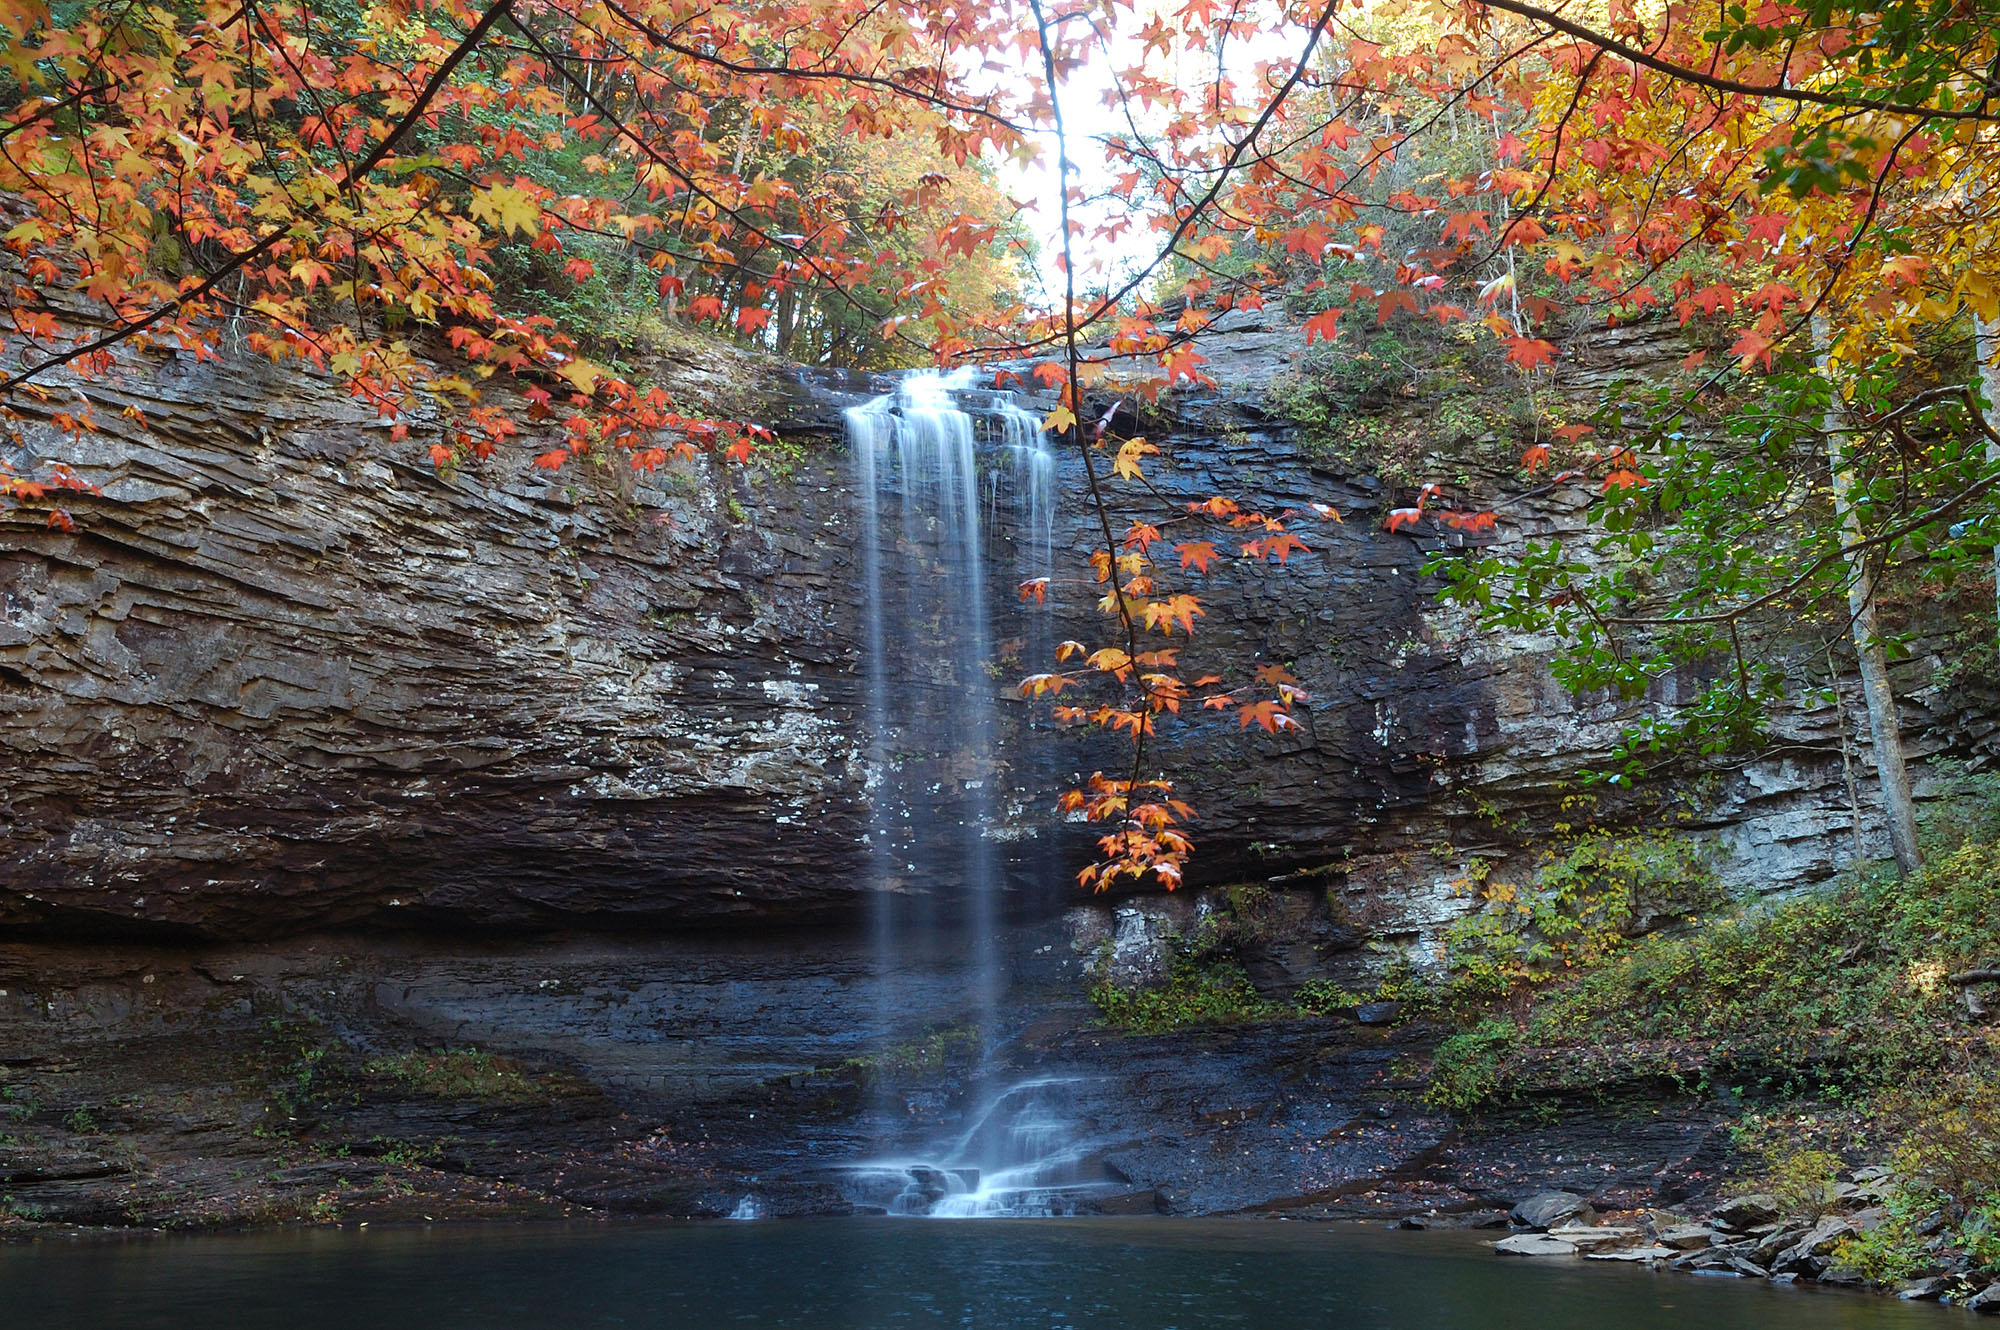 Cherokee Falls at Cloudland Canyon State Park in Rising Fawn, Georgia